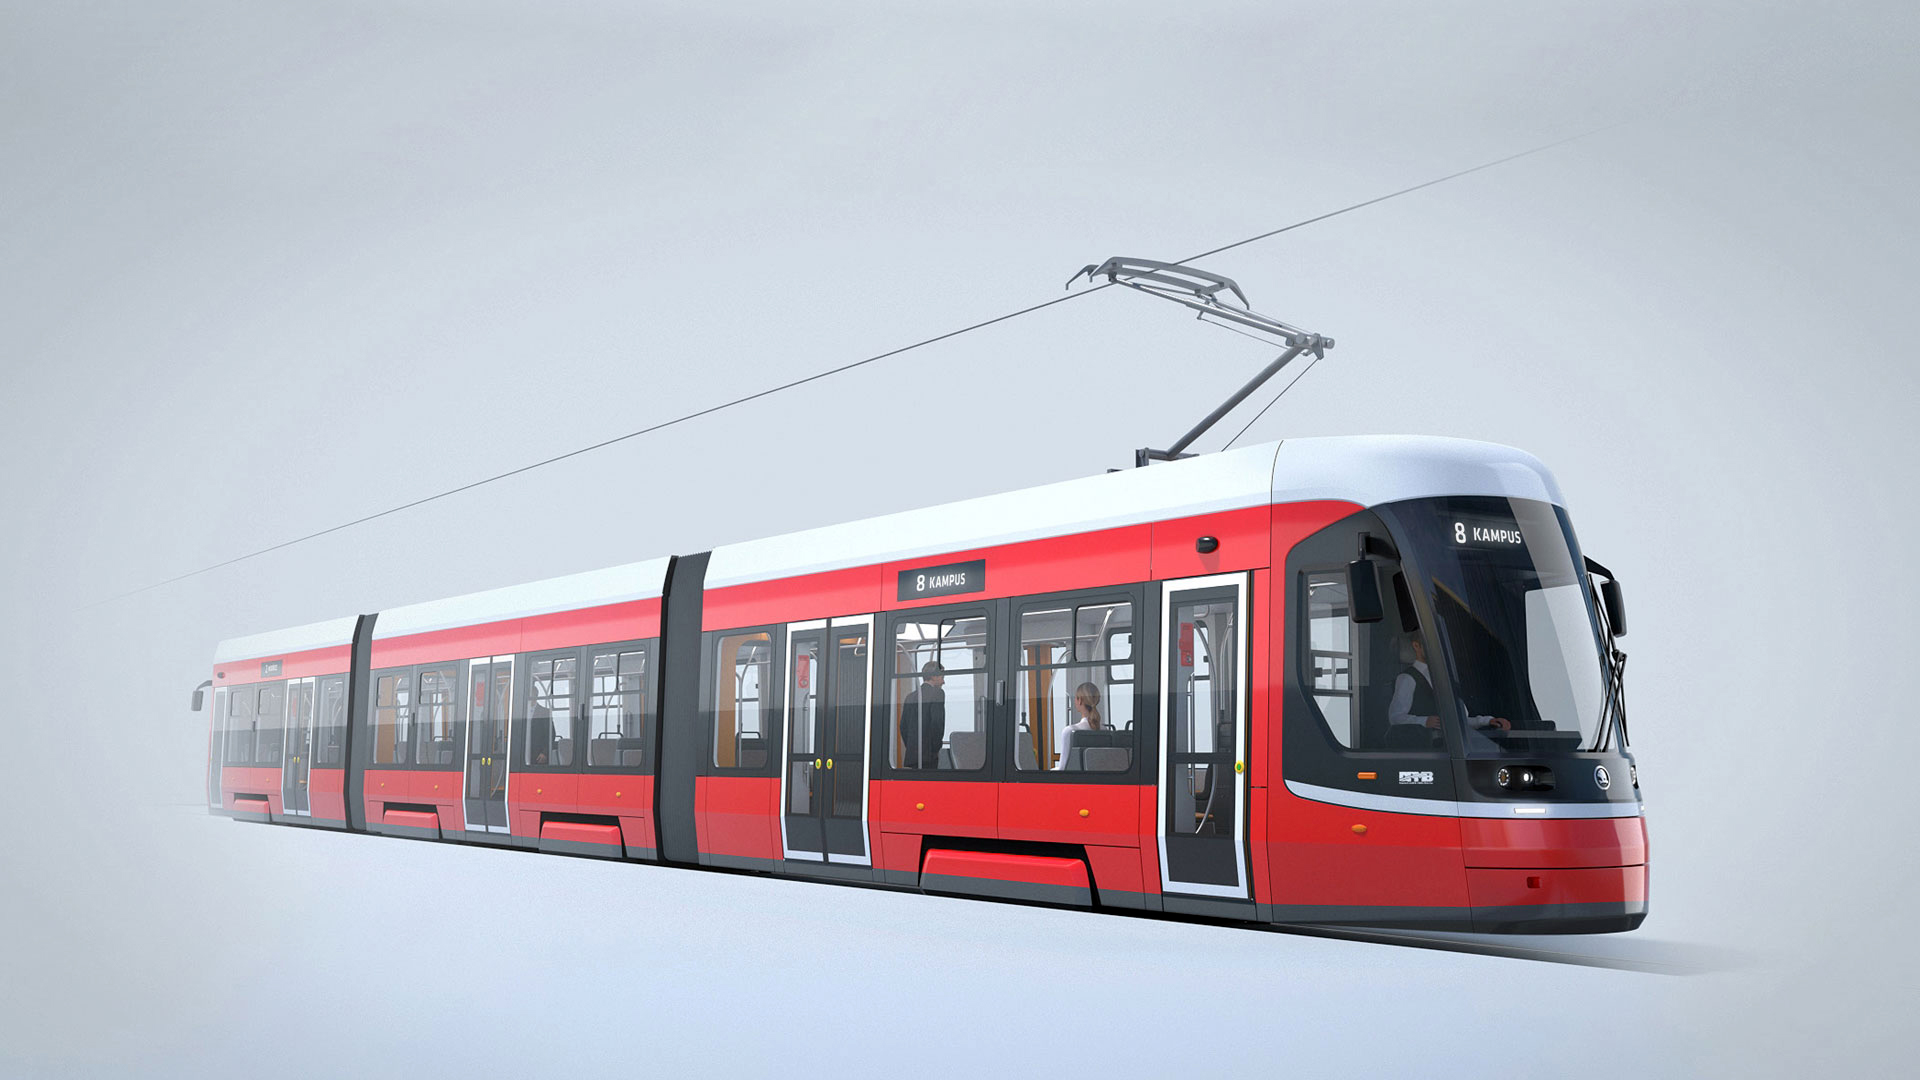 Rendering of the tram for Brno